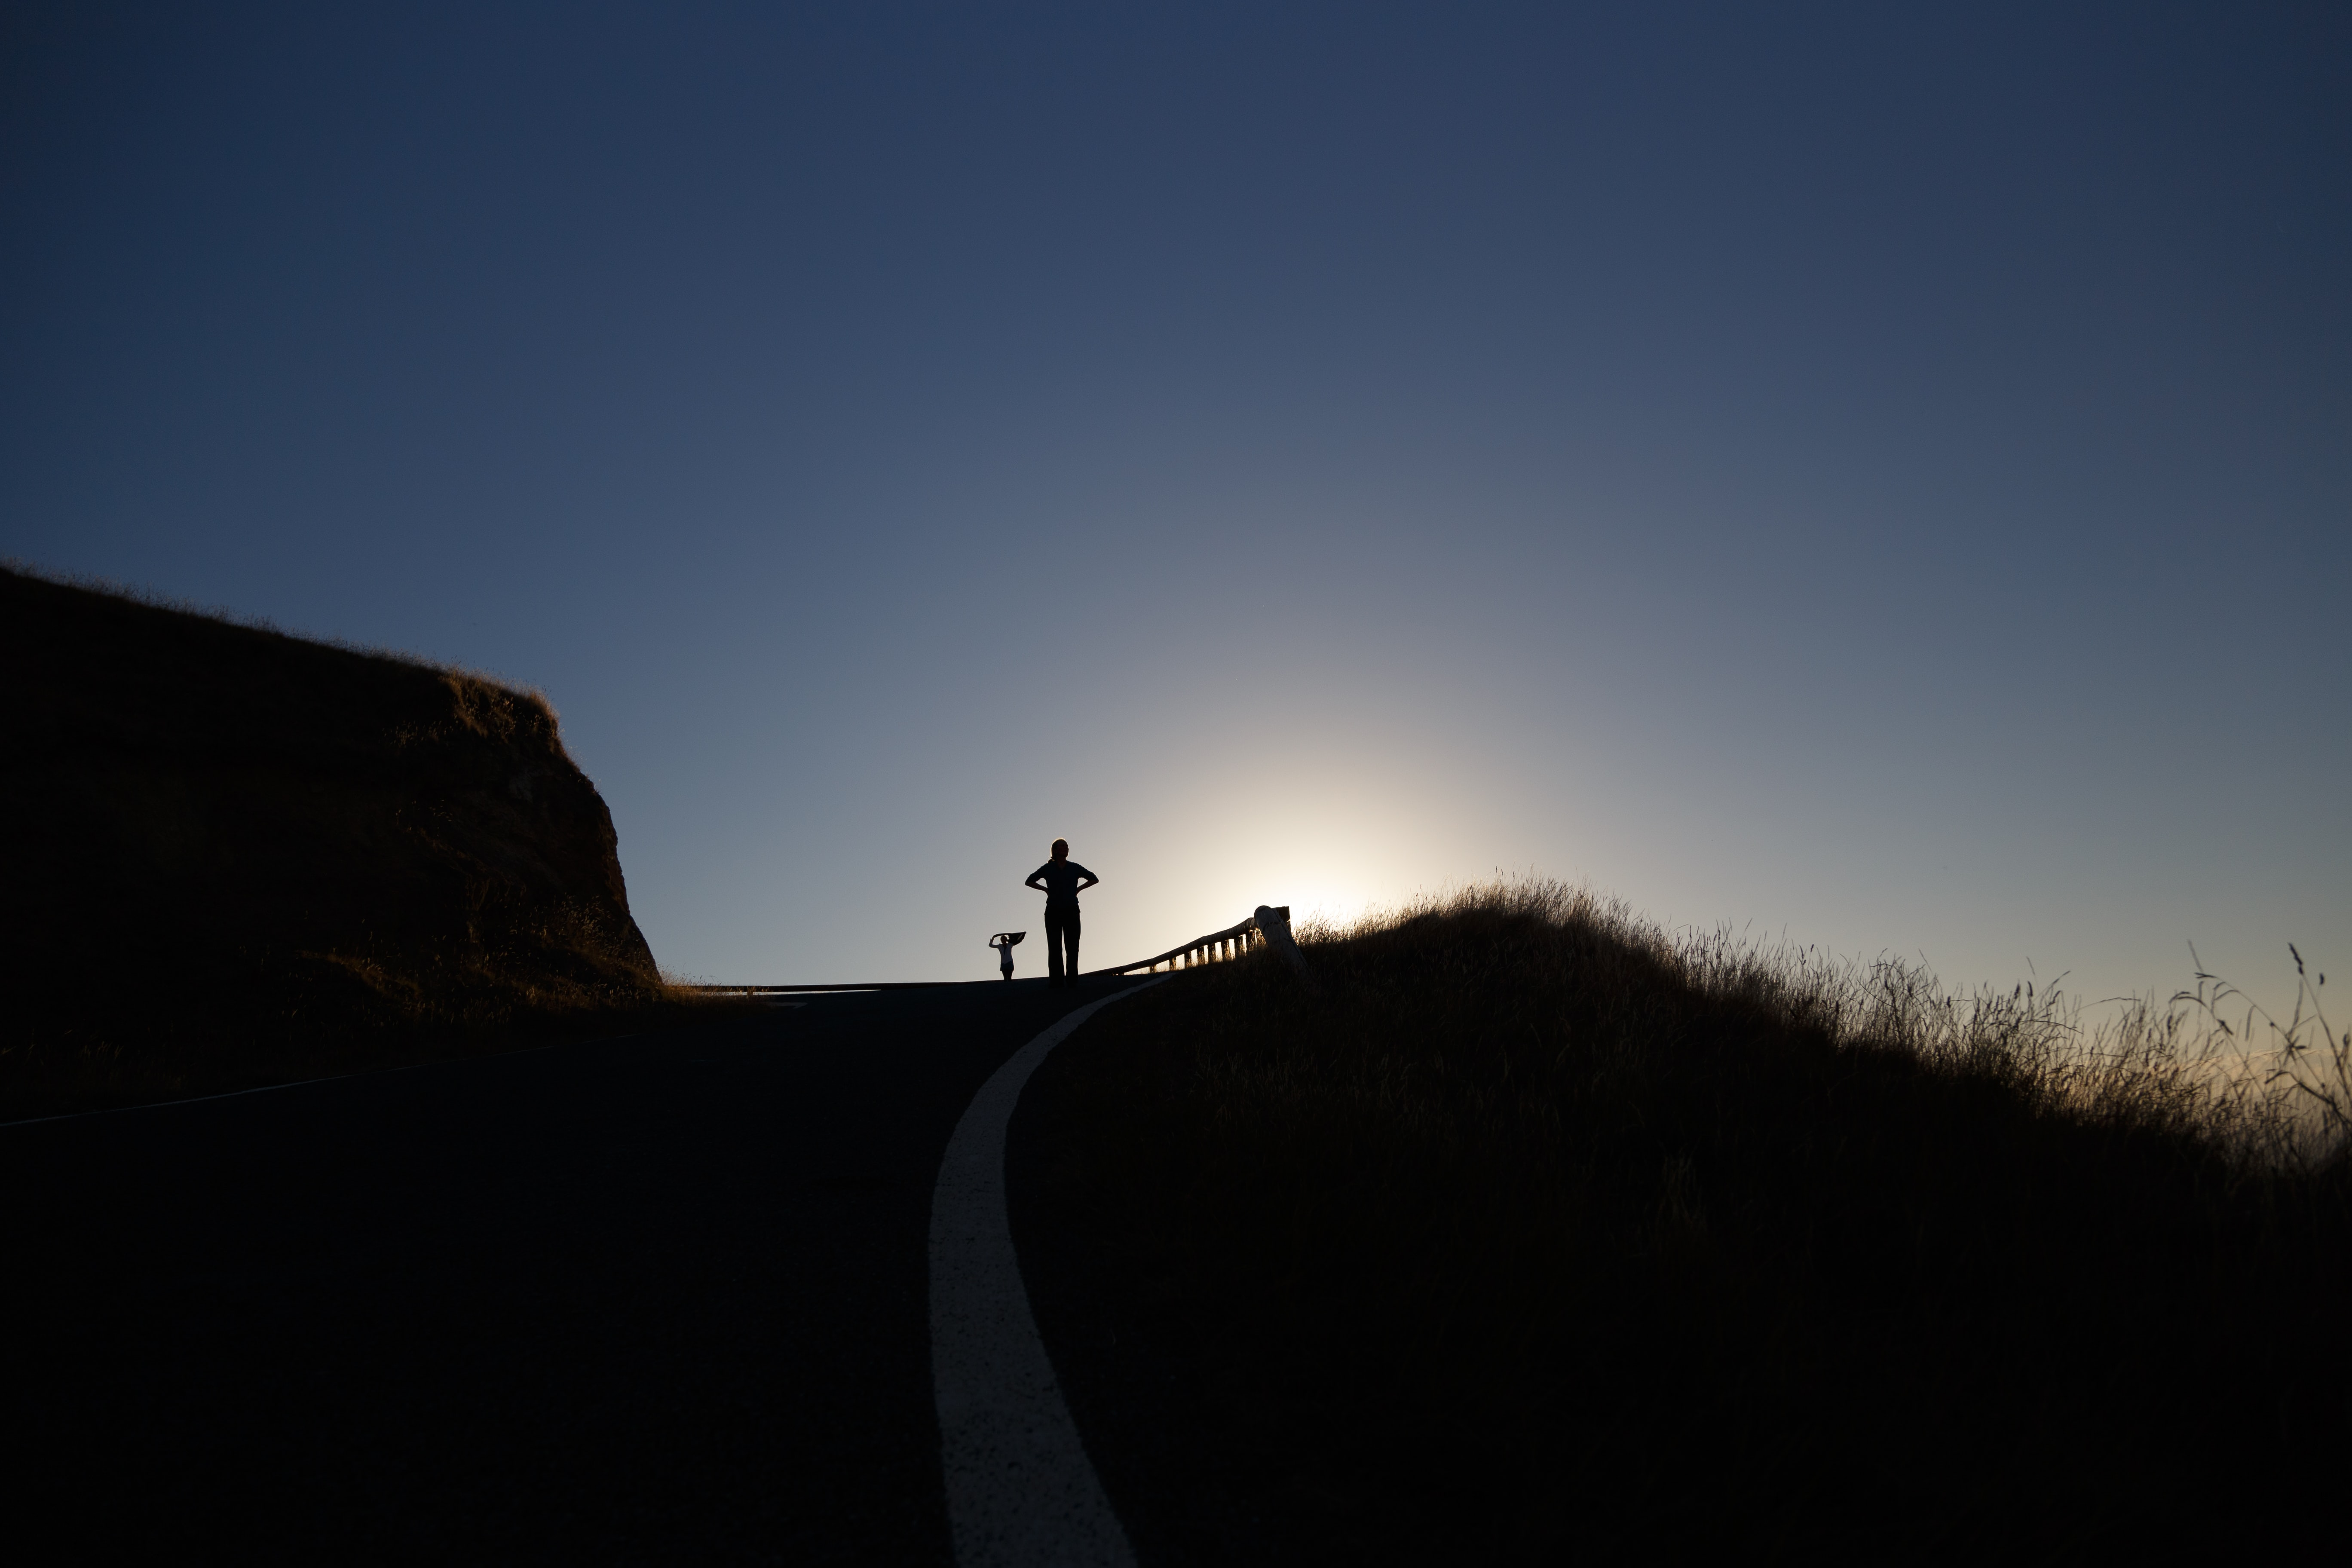 Silhouette of a person standing proudly atop a hill at sunrise